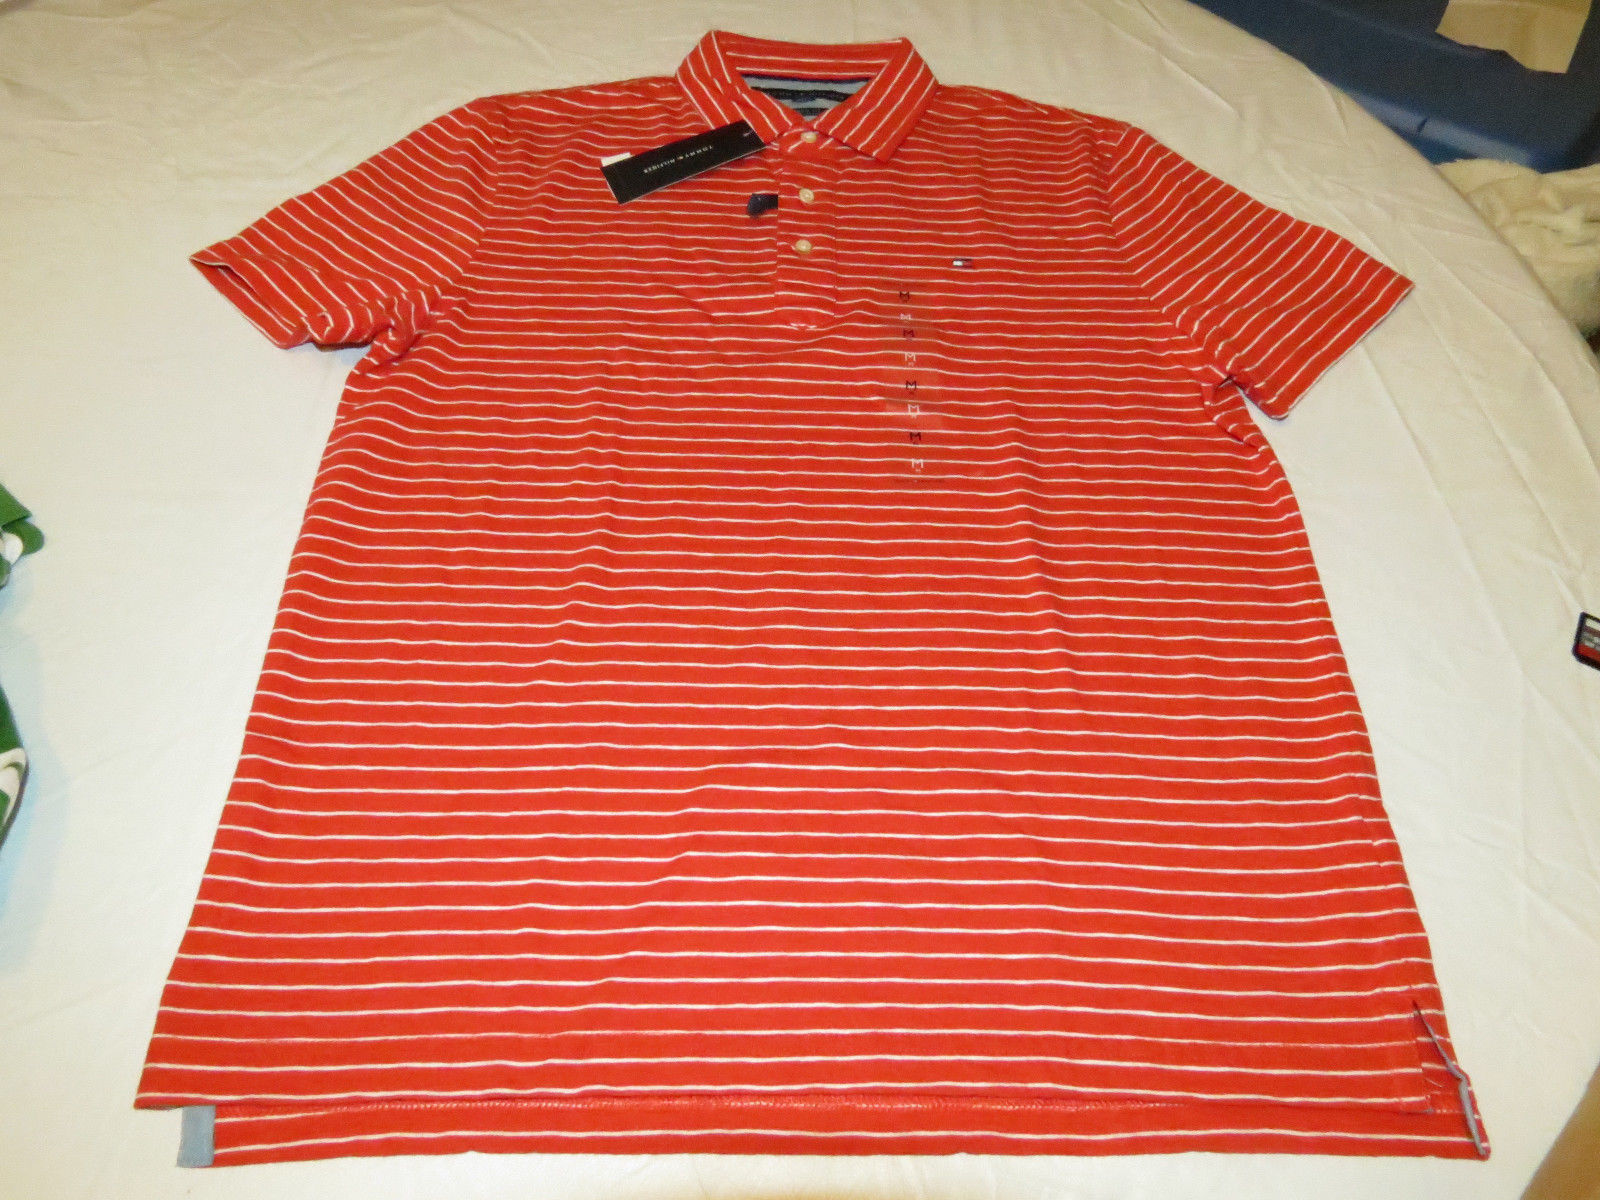 fa8a0affffc8 Men s Tommy Hilfiger Polo shirt striped and 50 similar items. S l1600